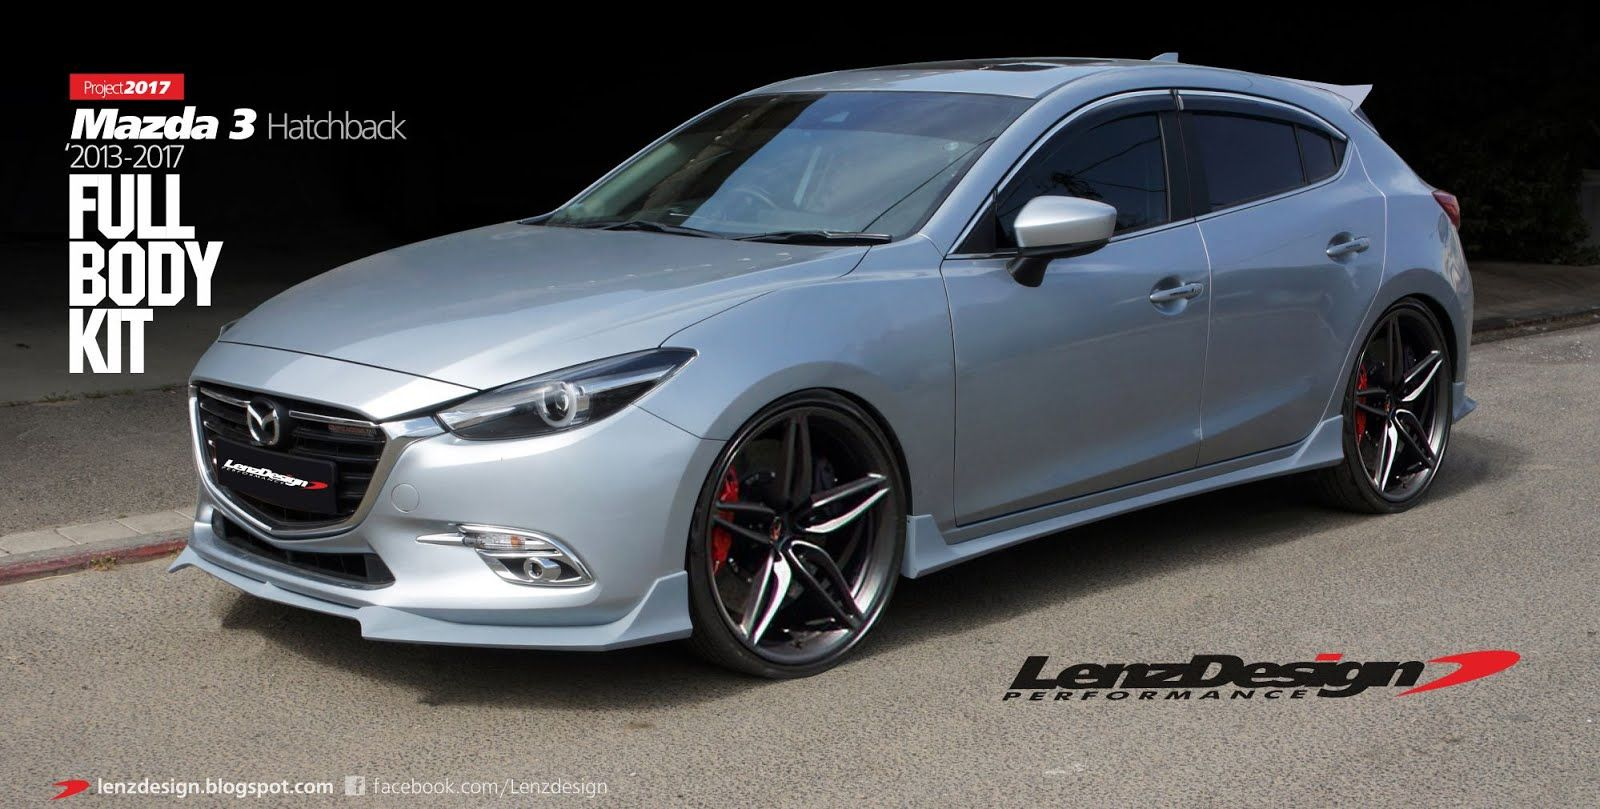 Mazda 3 bm 2017 body kit hatchback sedan